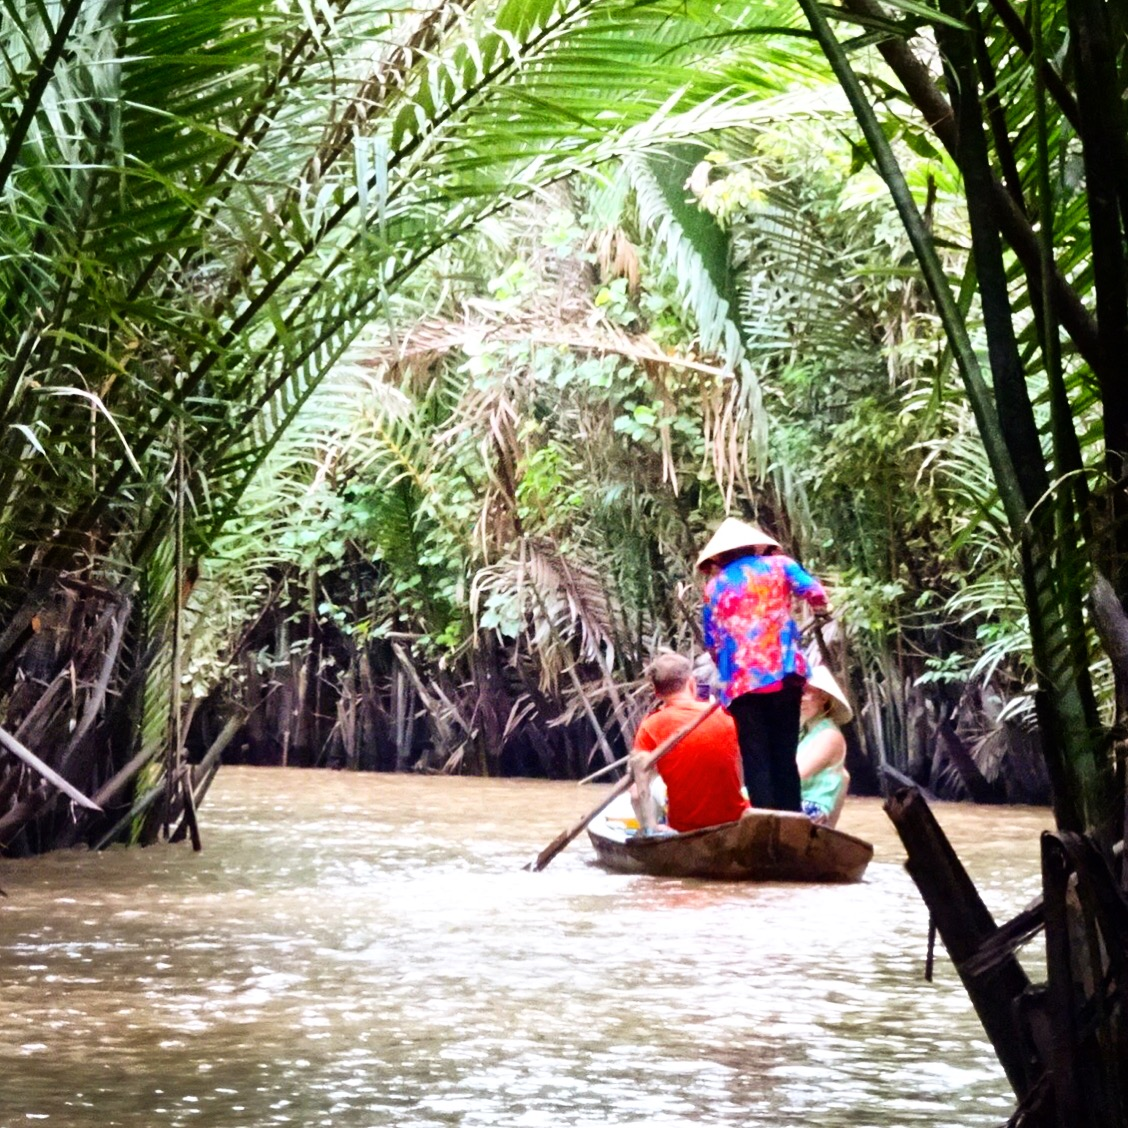 A Day Trip and Cruise of the Mekong Delta